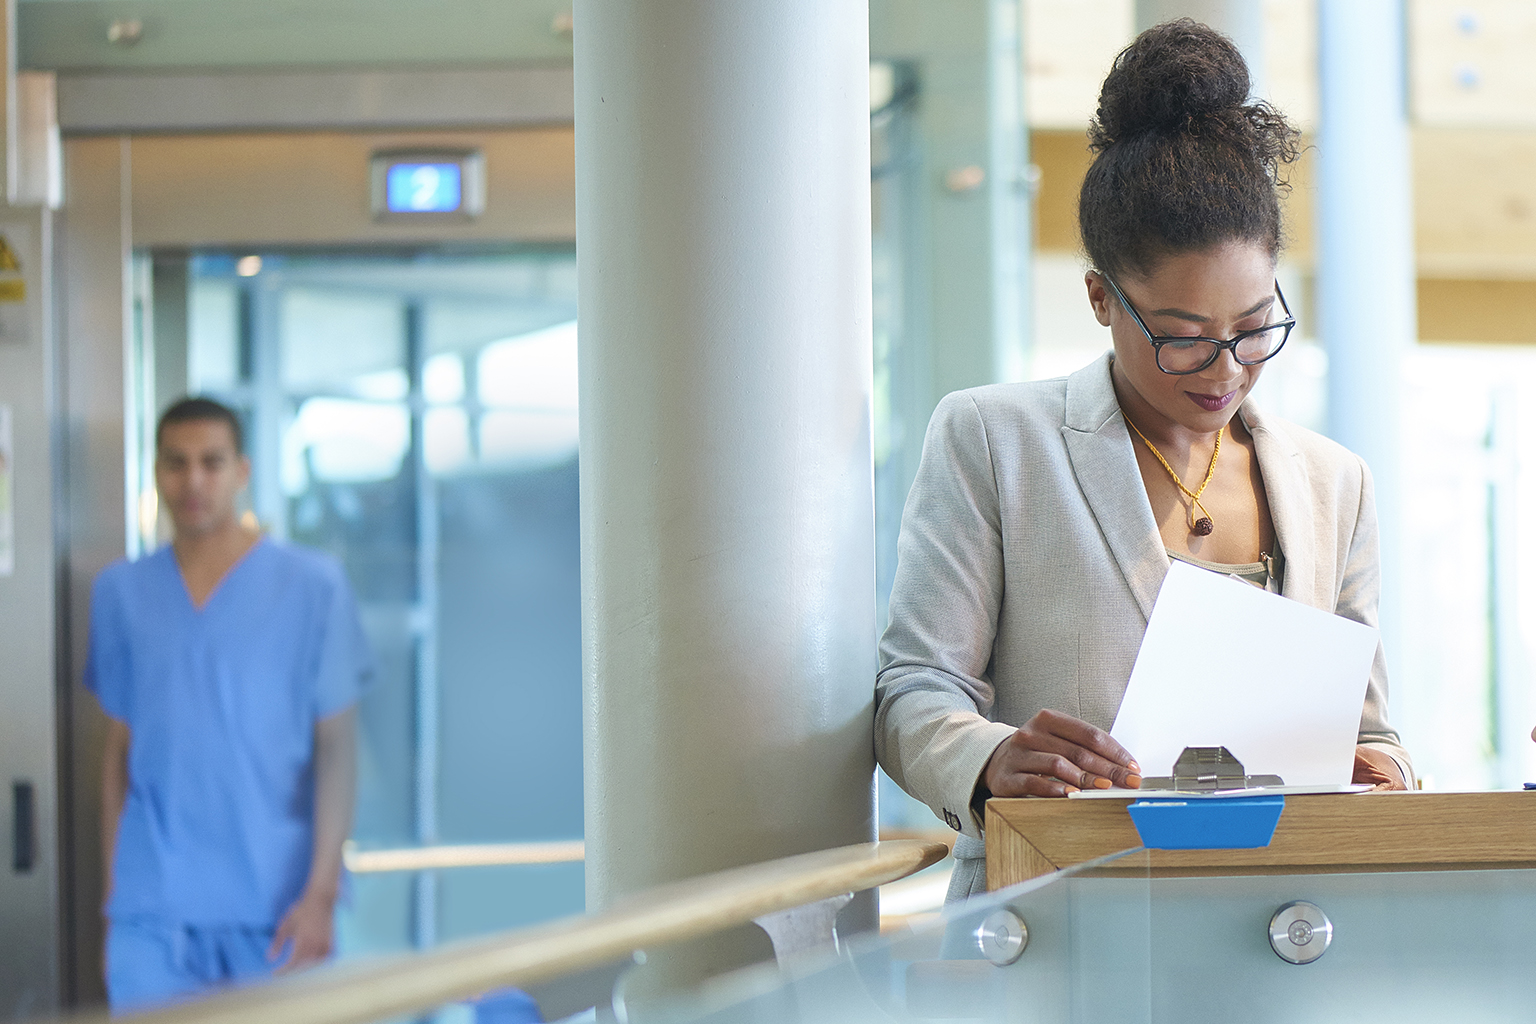 Driving change: Seven strategic imperatives for today's nurse leaders in the new healthcare reality